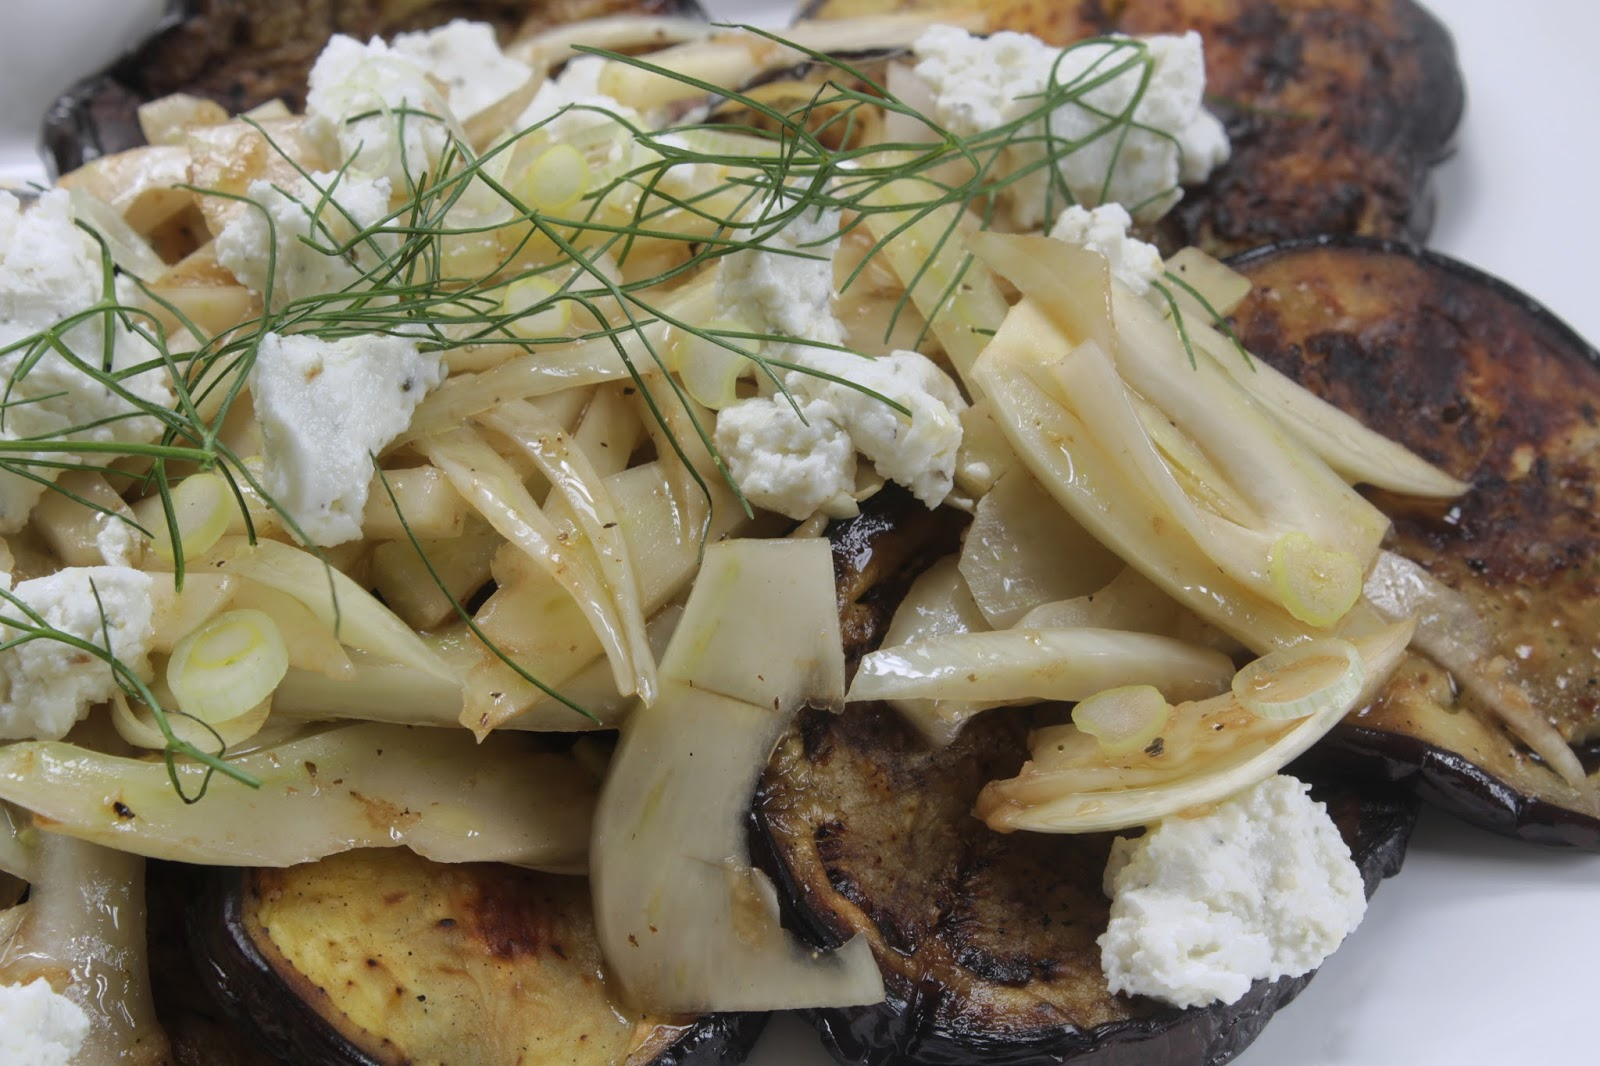 Eggplant and Fennel Salad with goat cheese